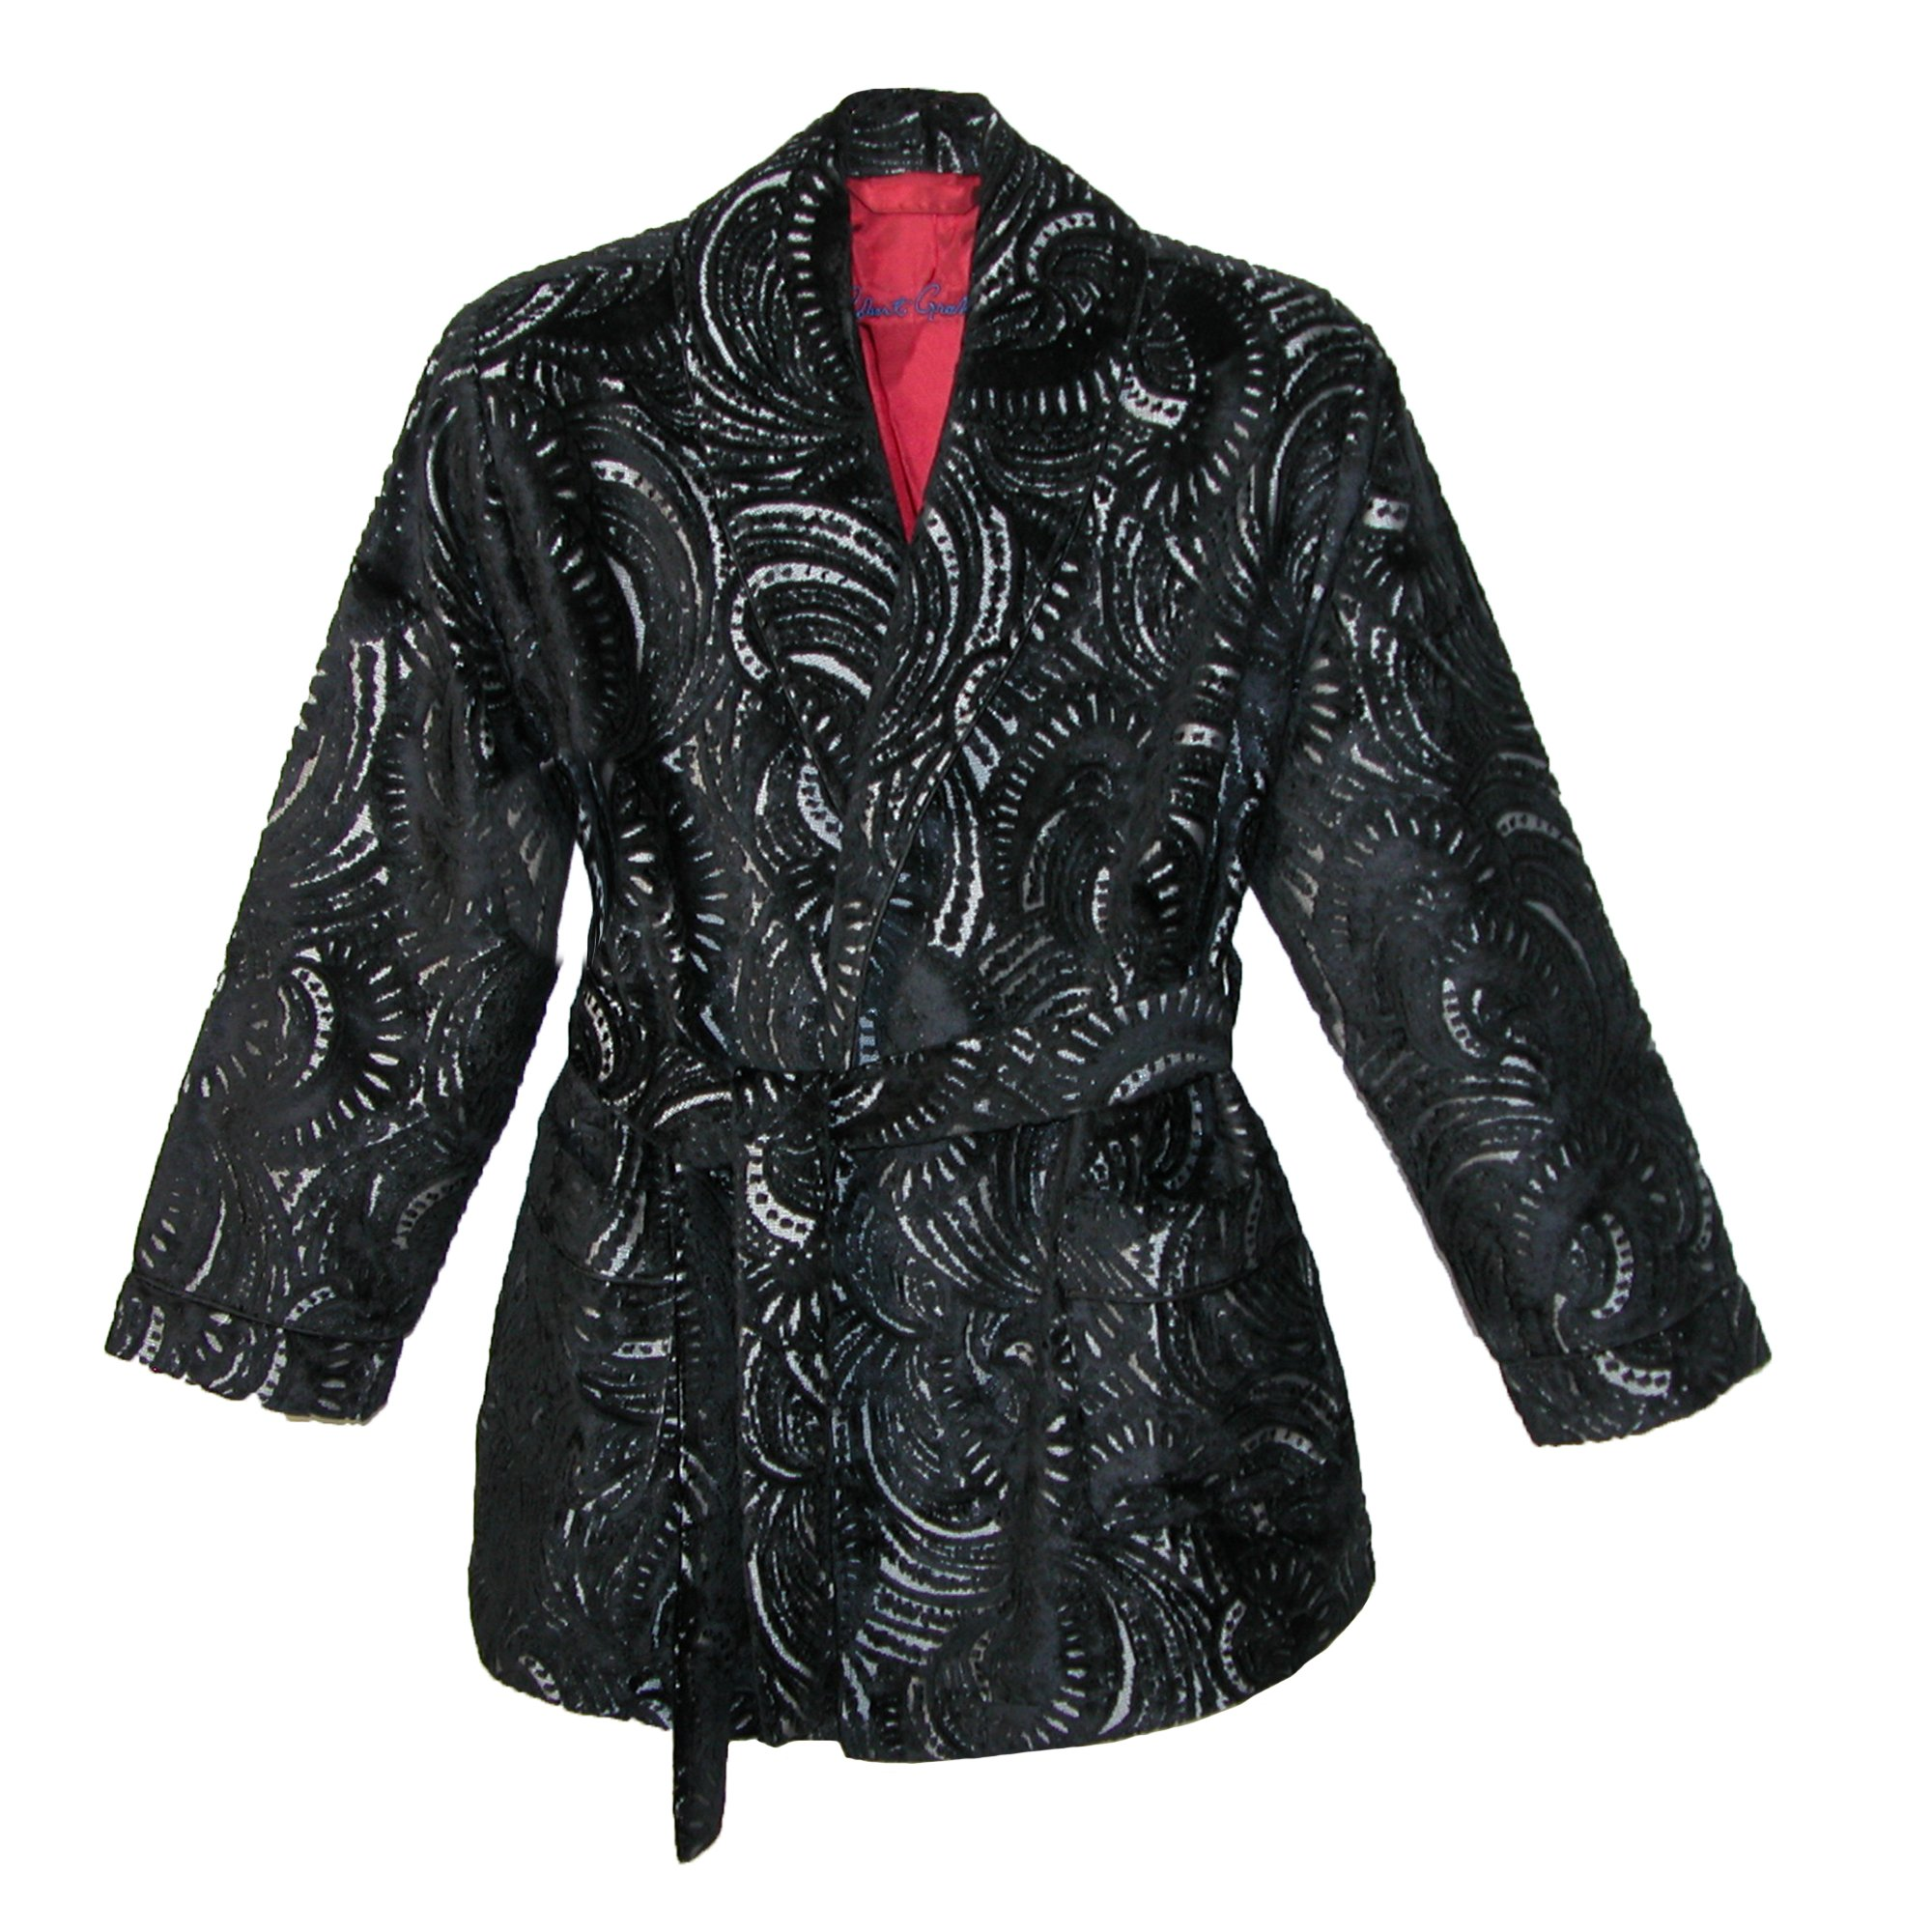 Robert Graham Men's Viareggio Smoking Jacket, Black Pattern, Small/Medium